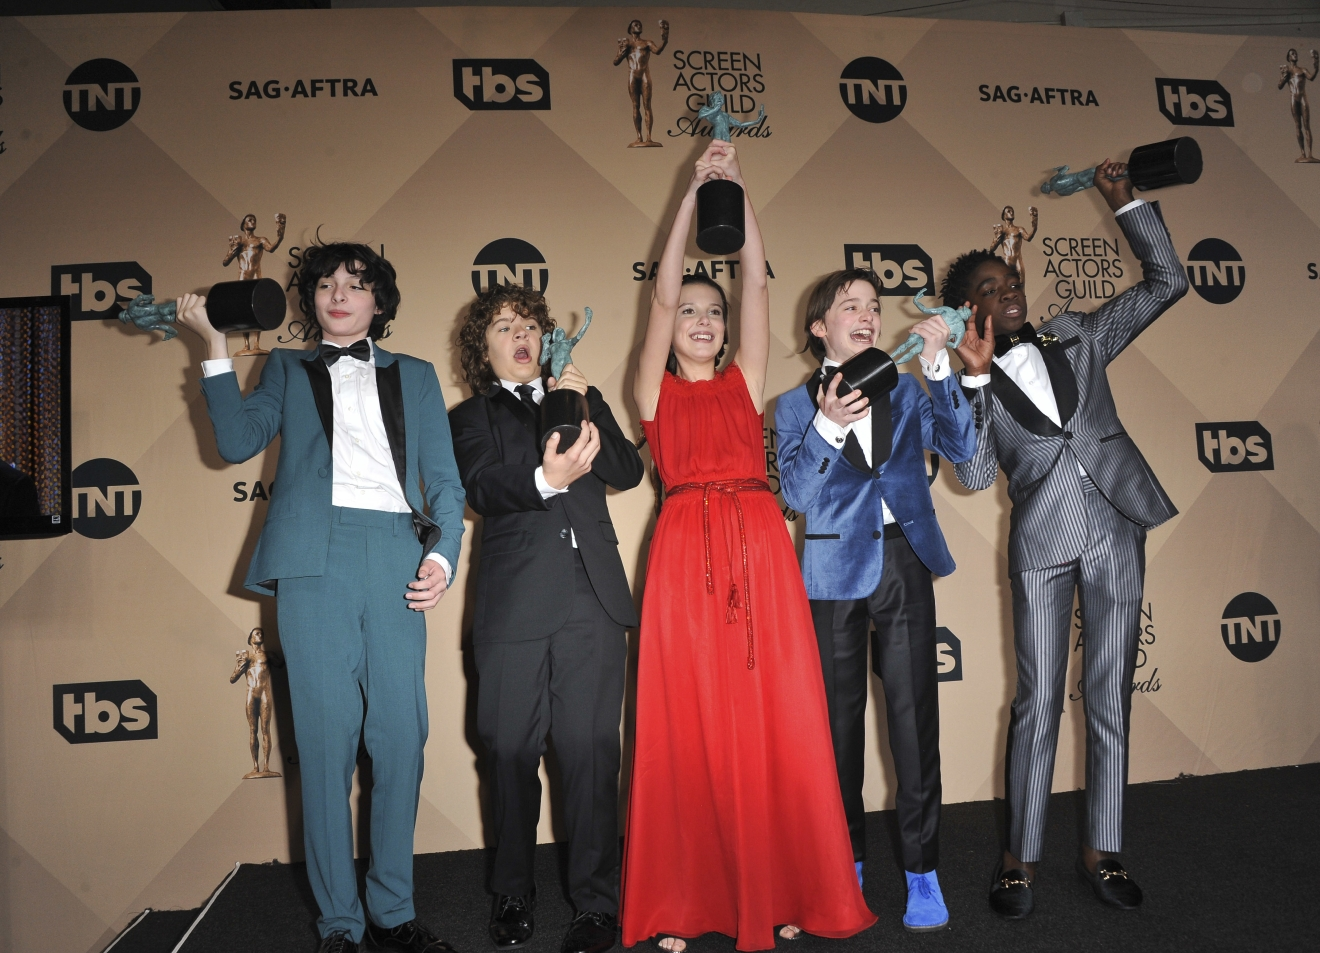 The SAG Awards 2017 Pressroom  Featuring: Caleb McLaughlin, Millie Bobby Brown, Noah Schapp, Gaten Matarazzo, Finn Wolfhard Where: Los Angeles, California, United States When: 30 Jan 2017 Credit: Apega/WENN.com